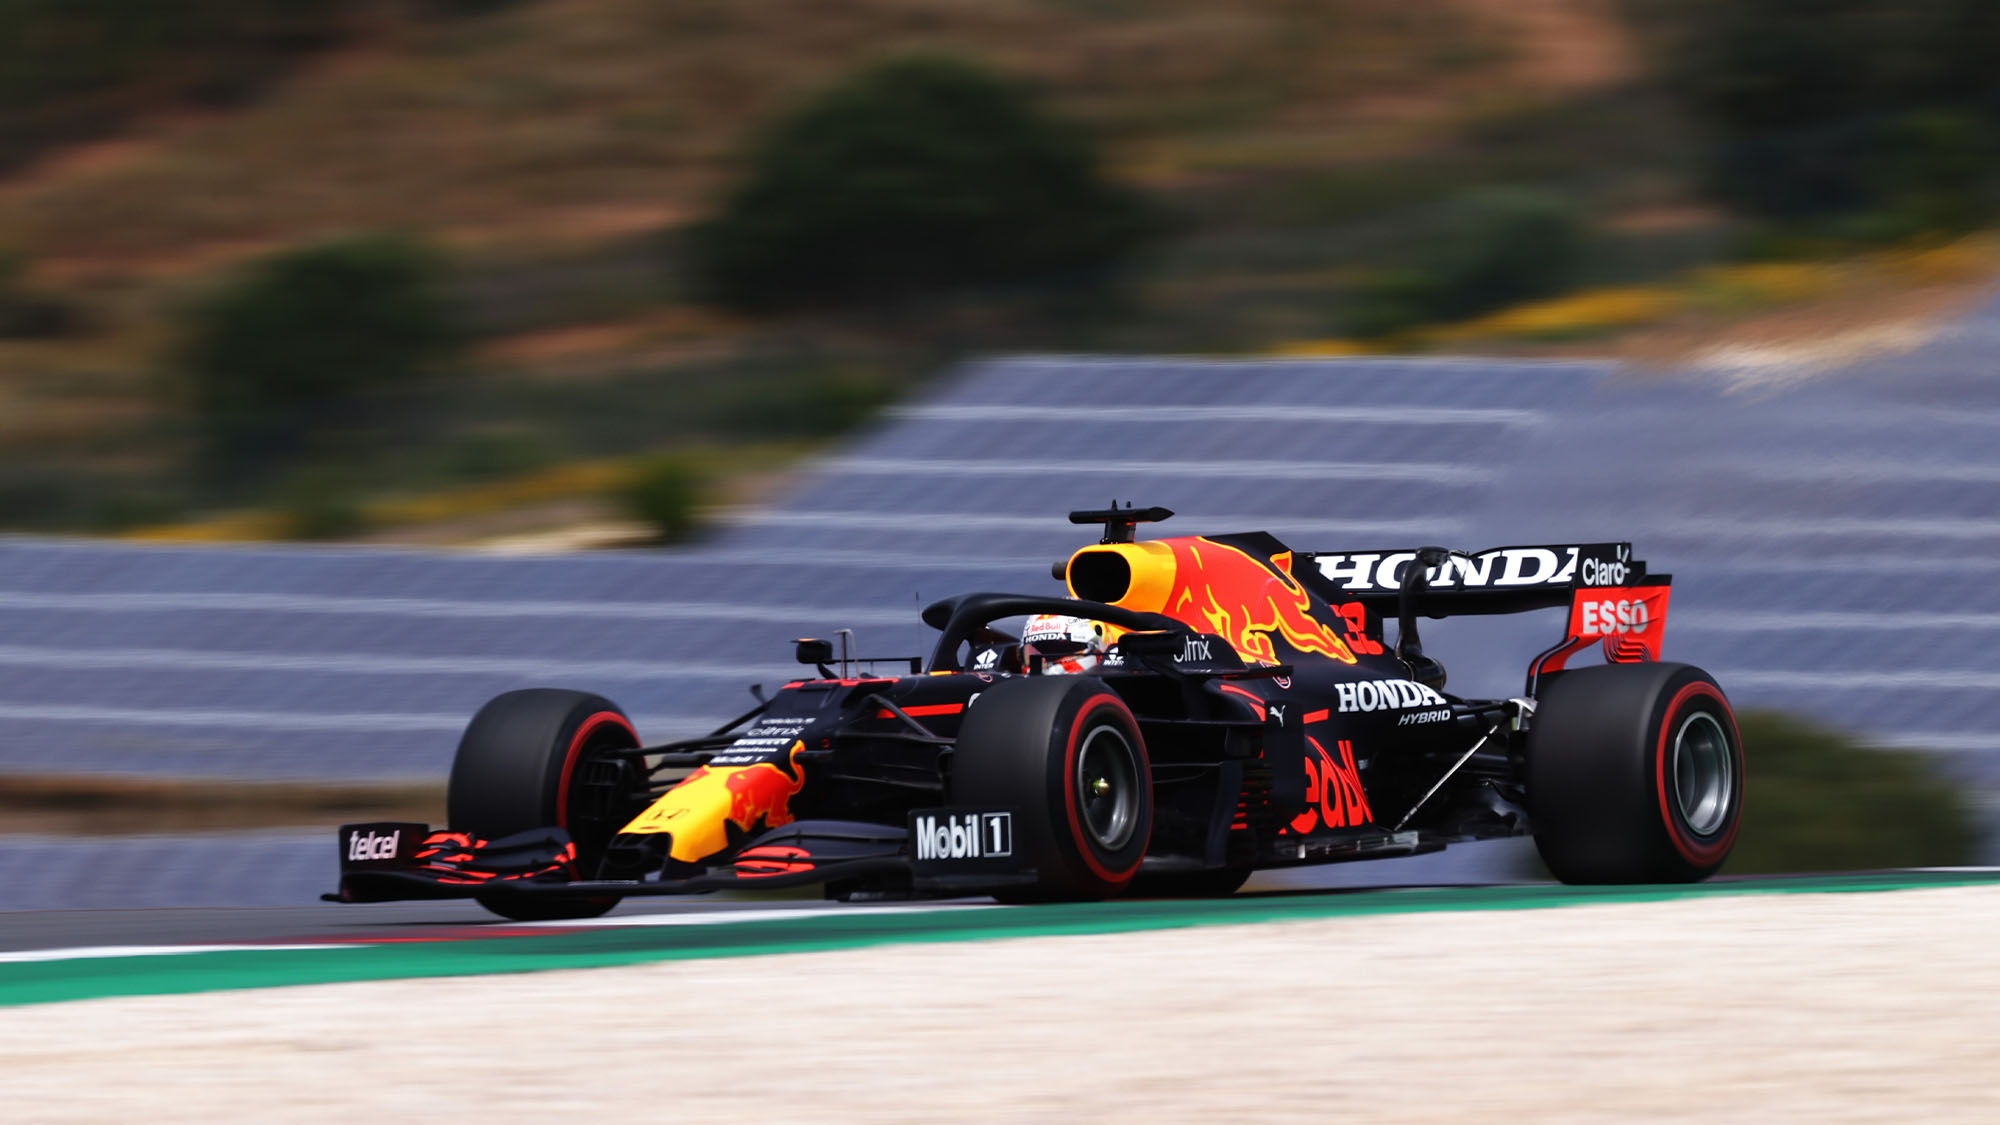 PORTIMAO, PORTUGAL - MAY 01: Max Verstappen of the Netherlands driving the (33) Red Bull Racing RB16B Honda on track during final practice for the F1 Grand Prix of Portugal at Autodromo Internacional Do Algarve on May 01, 2021 in Portimao, Portugal. (Photo by Lars Baron/Getty Images)